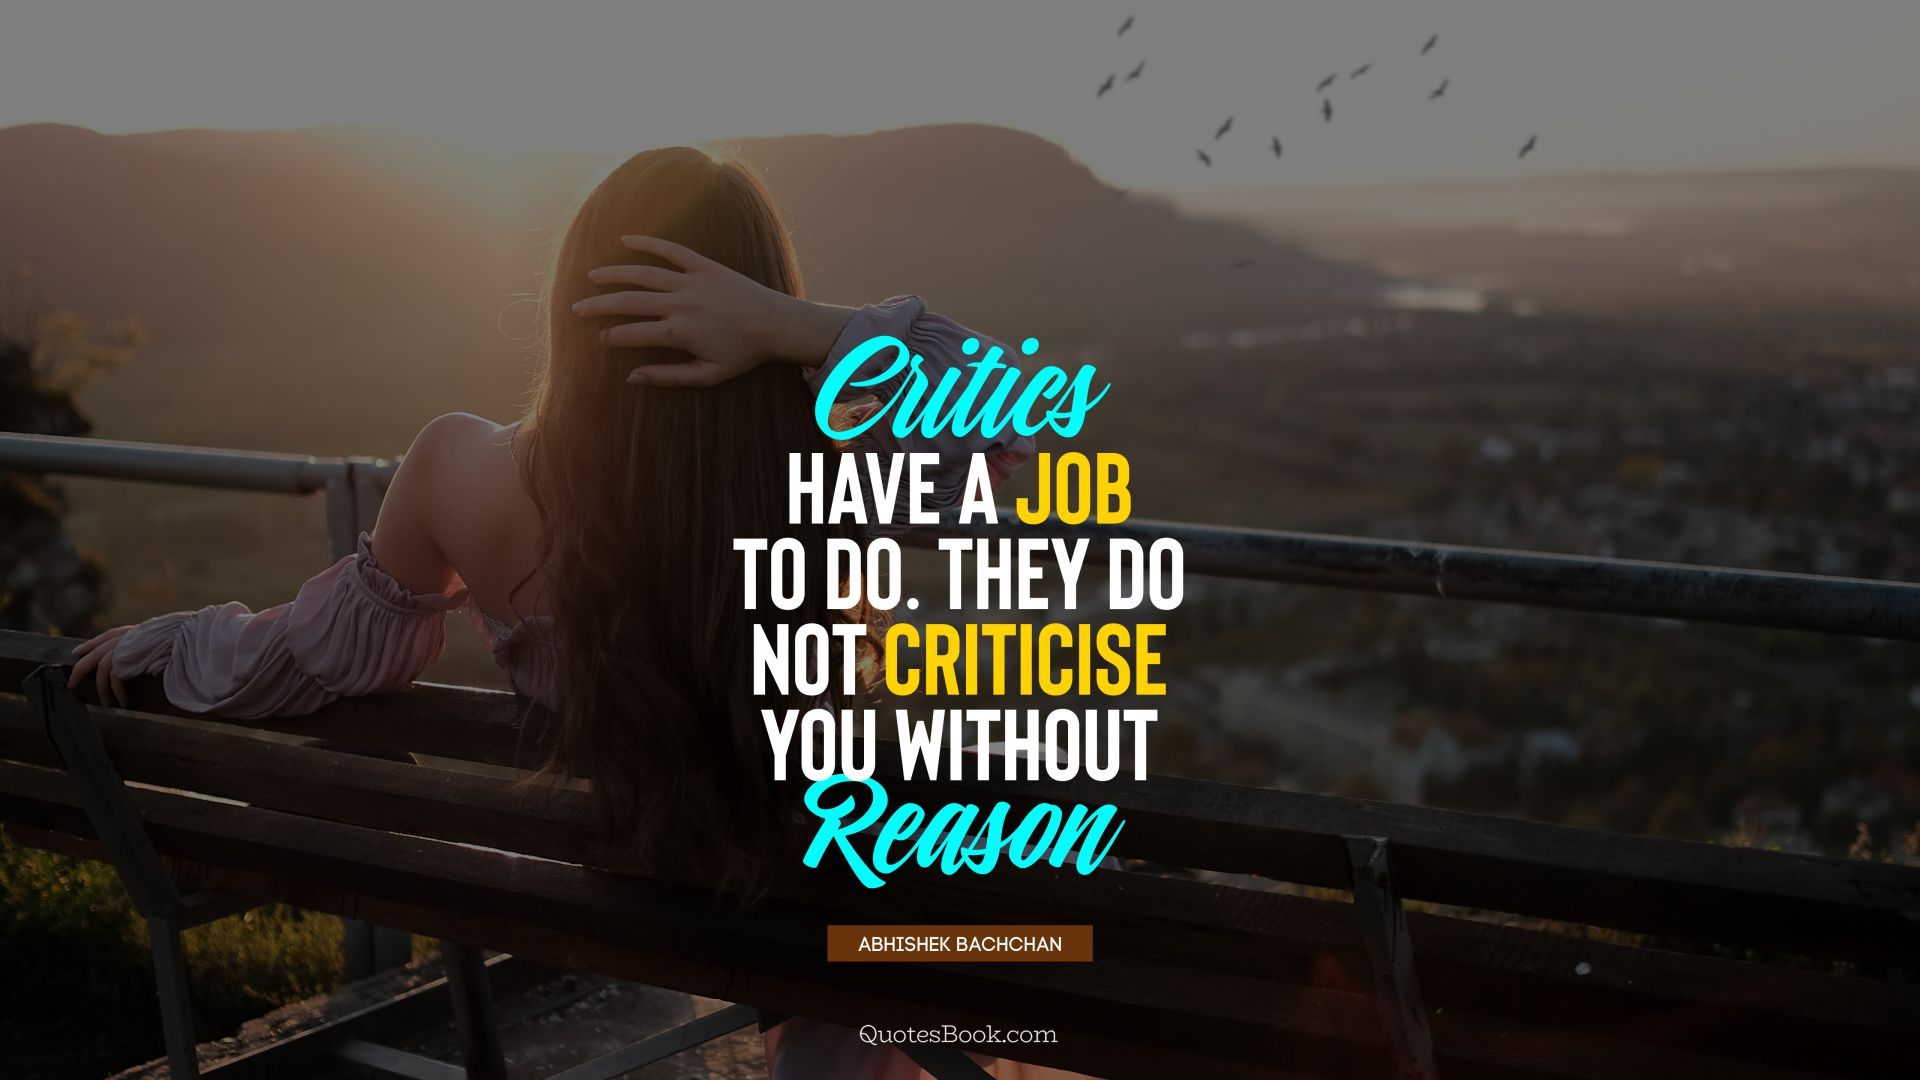 Critics have a job to do. They do not criticise you without reason. - Quote by Abhishek Bachchan